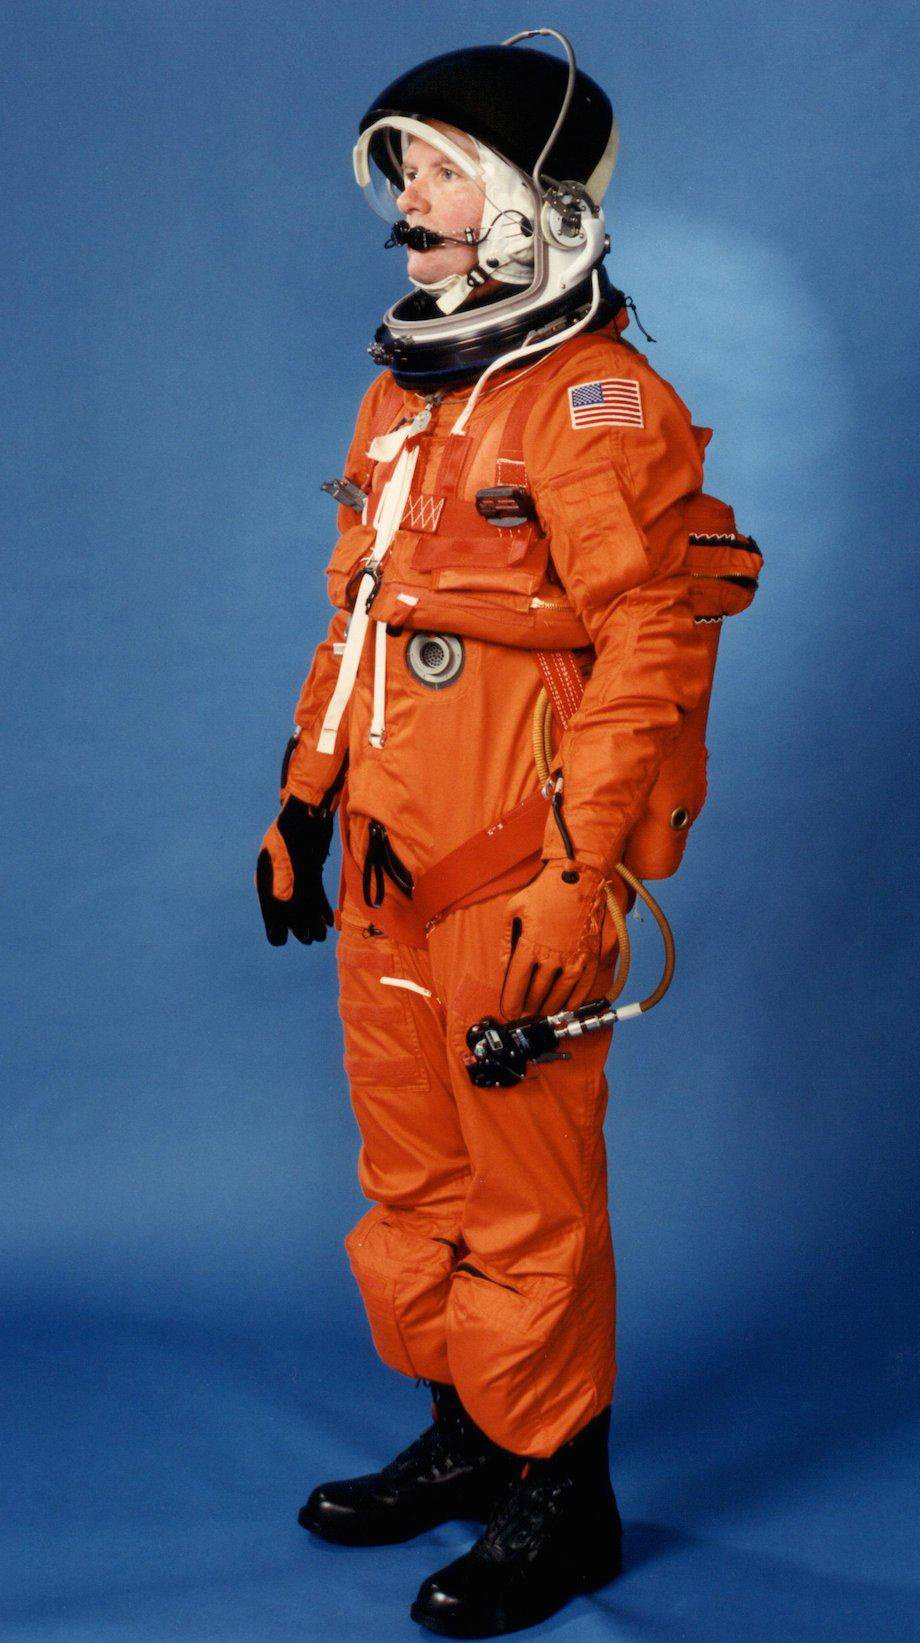 check-out-the-evolution-of-the-space-suit-41-hq-photos-22